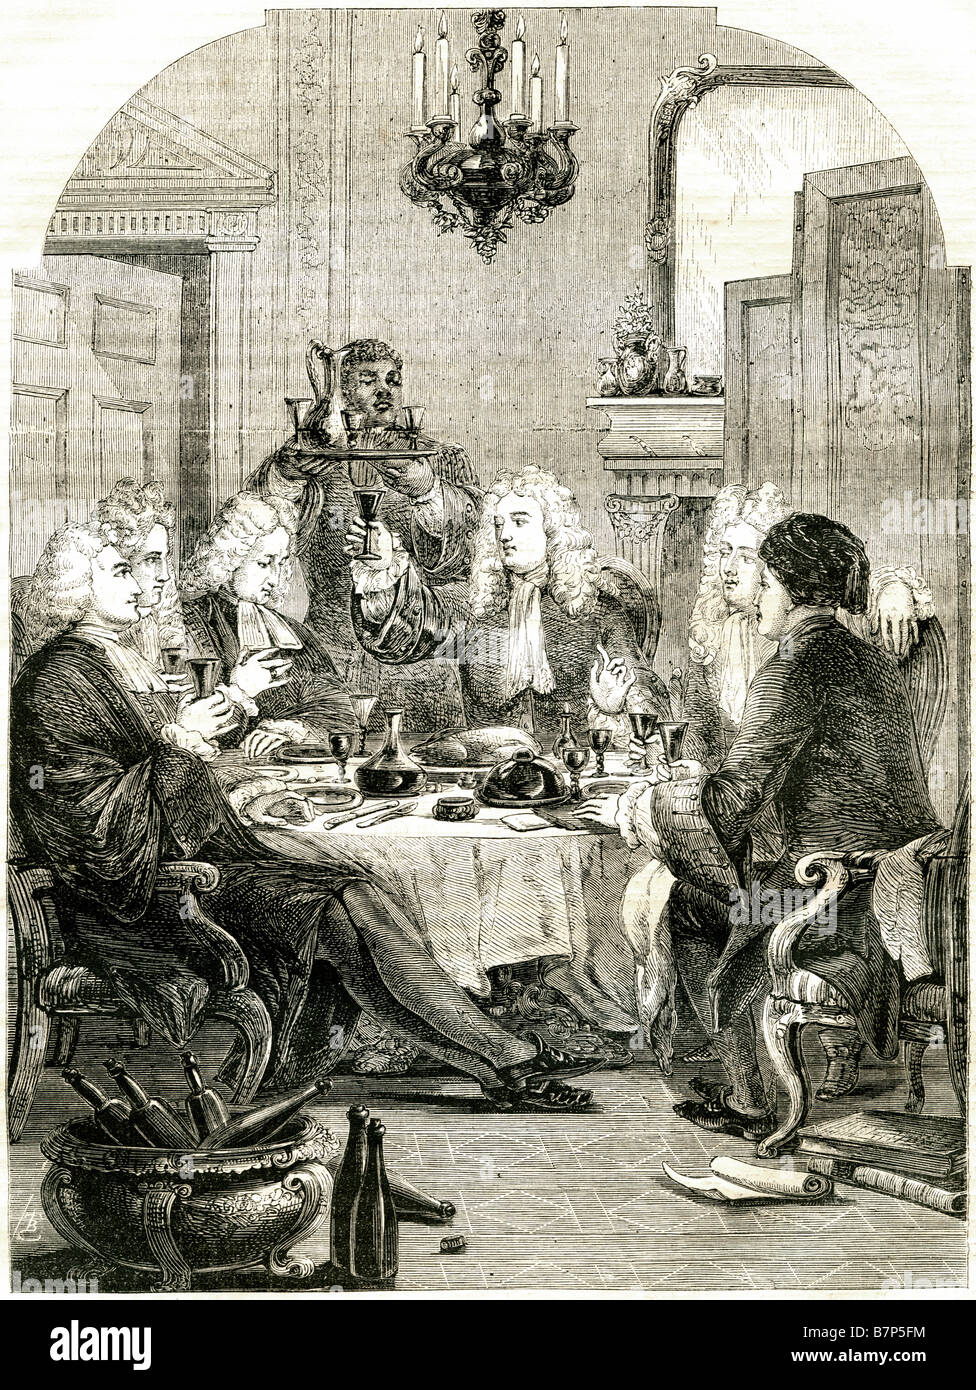 servant wigs feast table gentlemen wine scroll toasting interior room candle dinner lunc dining traditional clothing - Stock Image